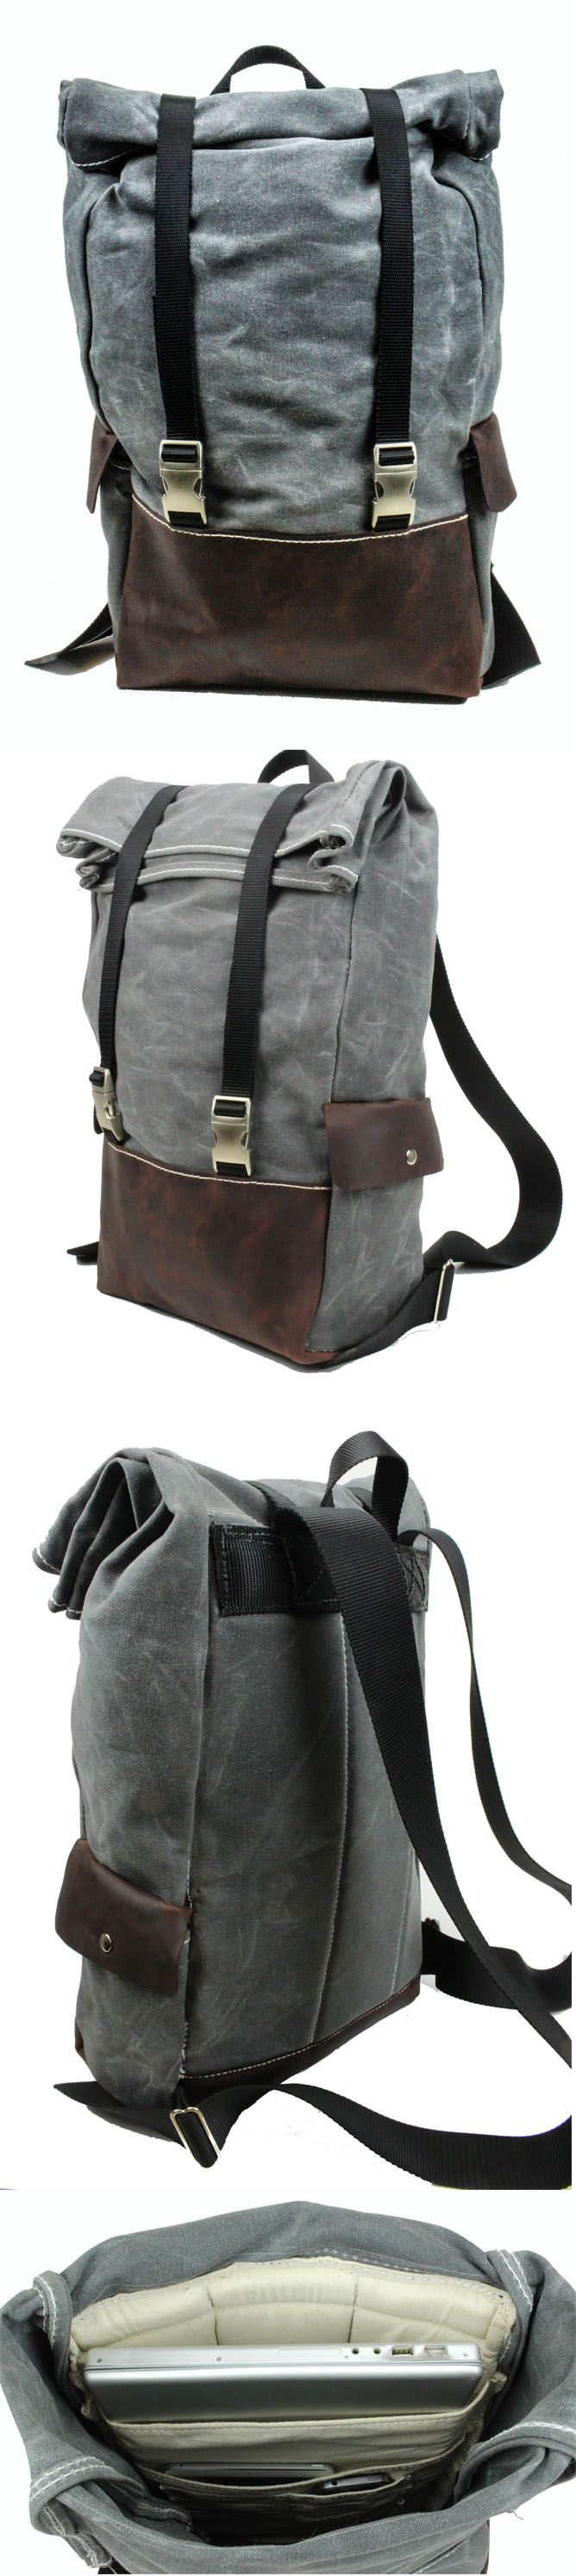 ff3d3ec1e54 Rugged Material's Weatherproof Roll-top Laptop Backpack. Waxed Canvas,  Leather and all metal hardware. Lifetime Guarantee.